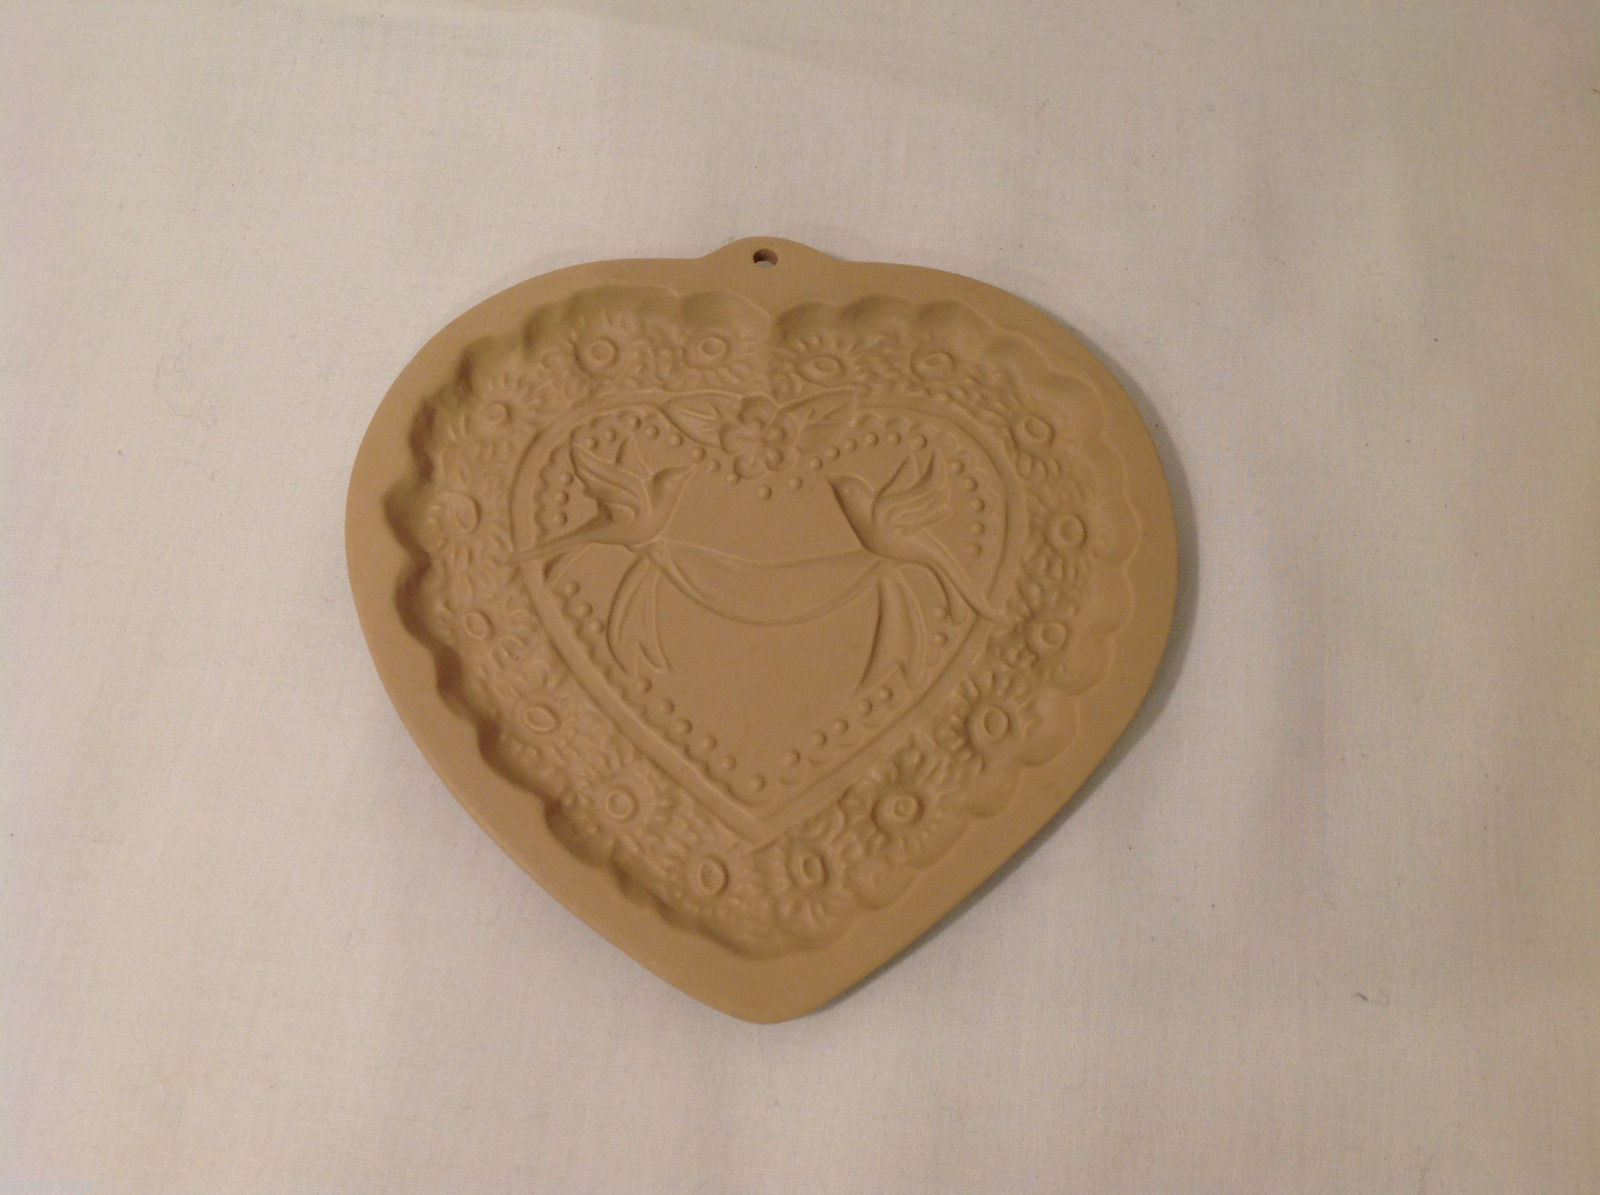 Vintage Heart Shaped Ceramic Cookie Press Plates with Two Doves and Flowers